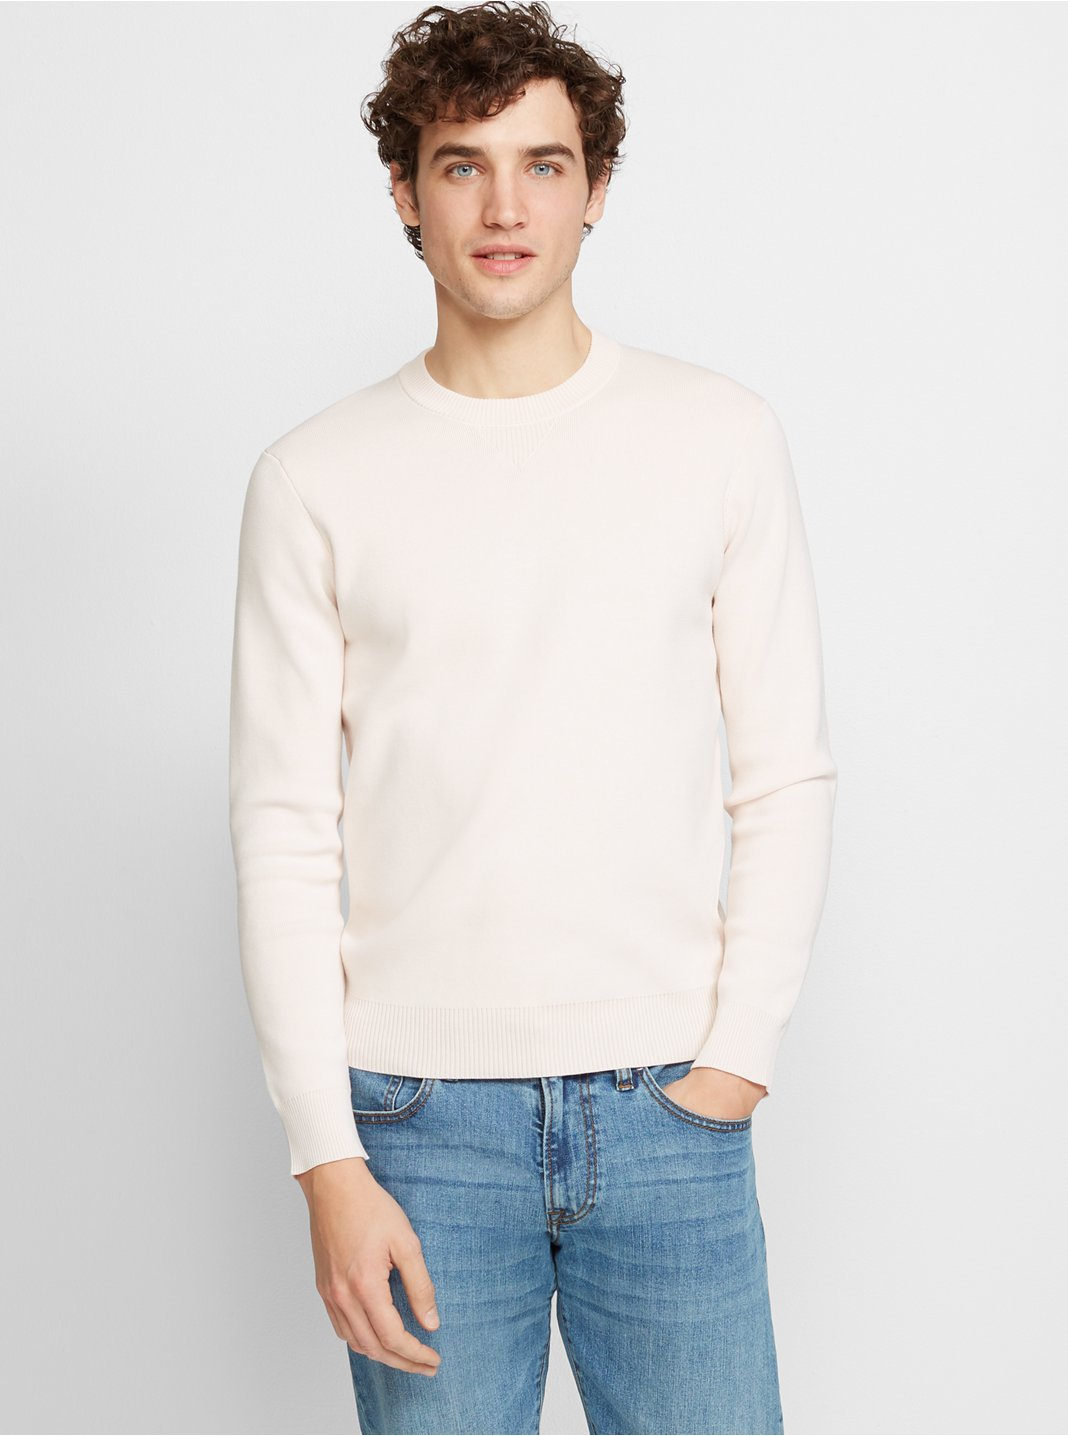 Racking Stitch Sweatshirt